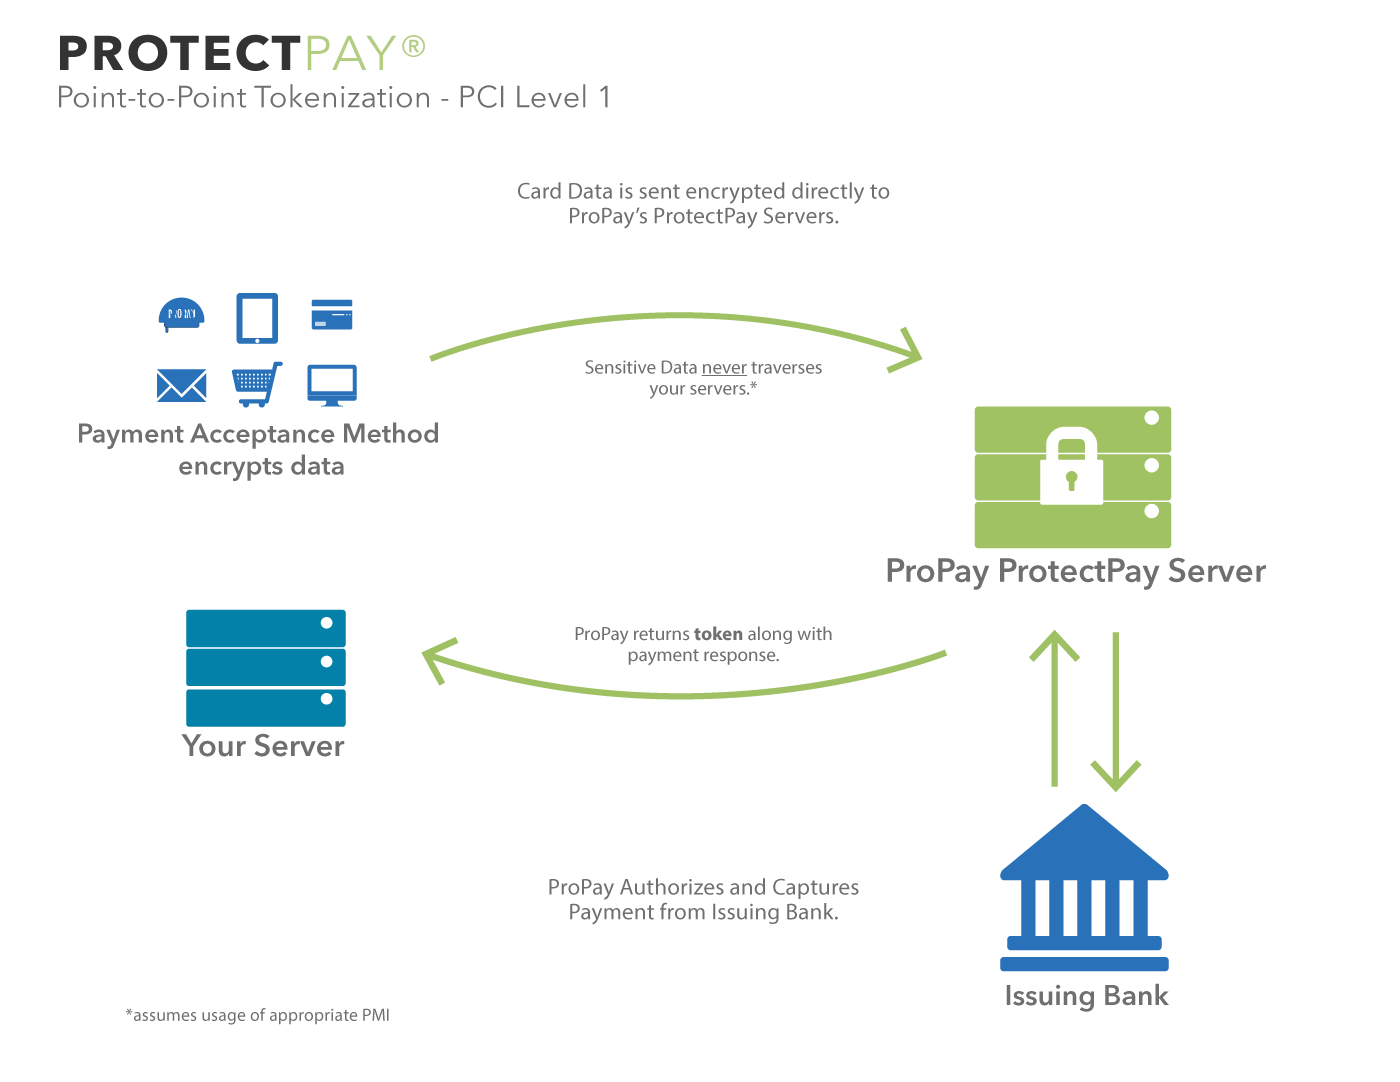 ProPay tokenization diagram